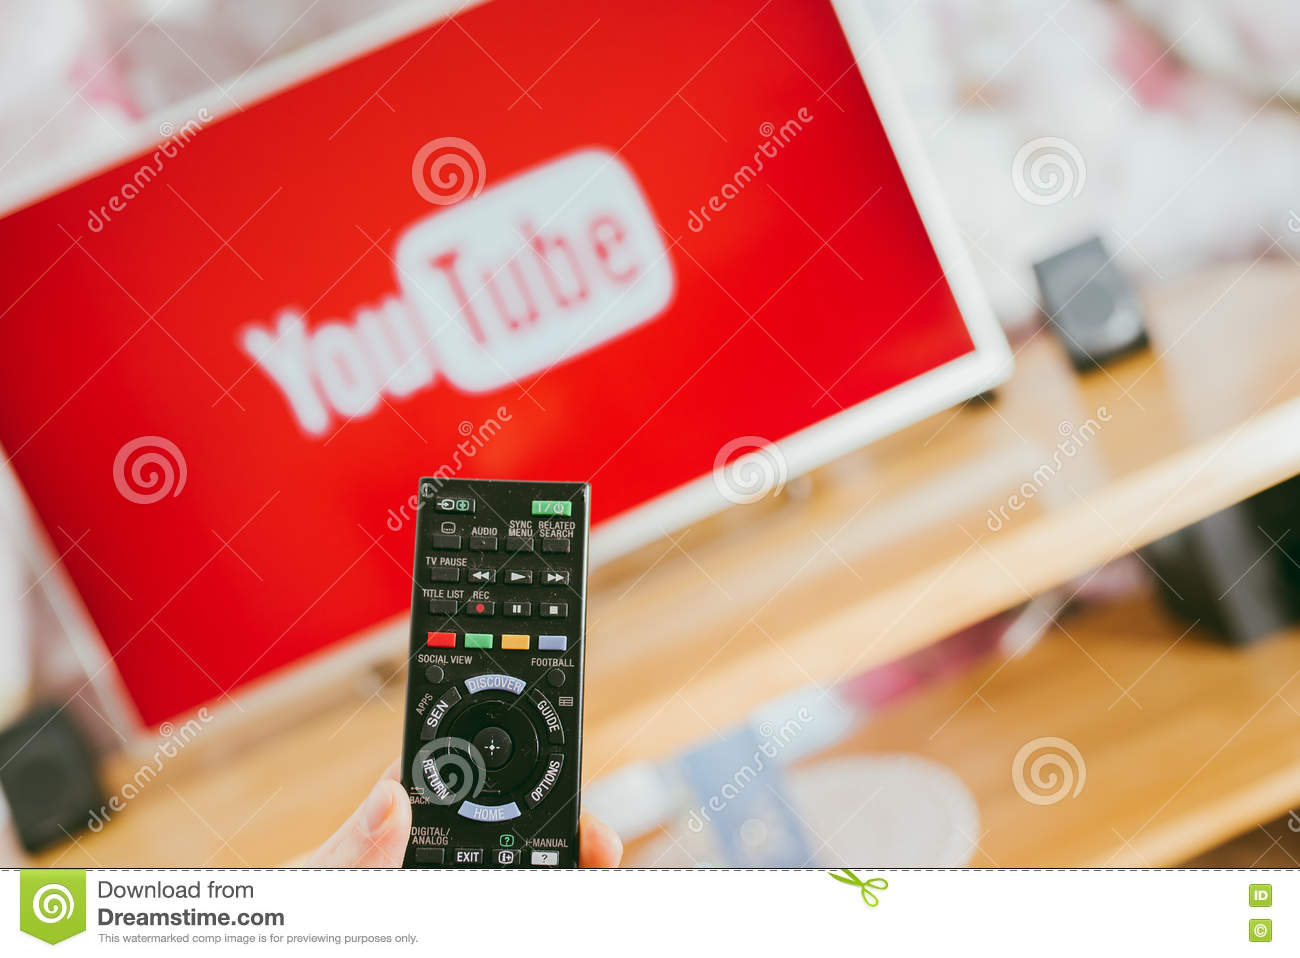 YouTube App On Sony Smart TV Editorial Image - Image of